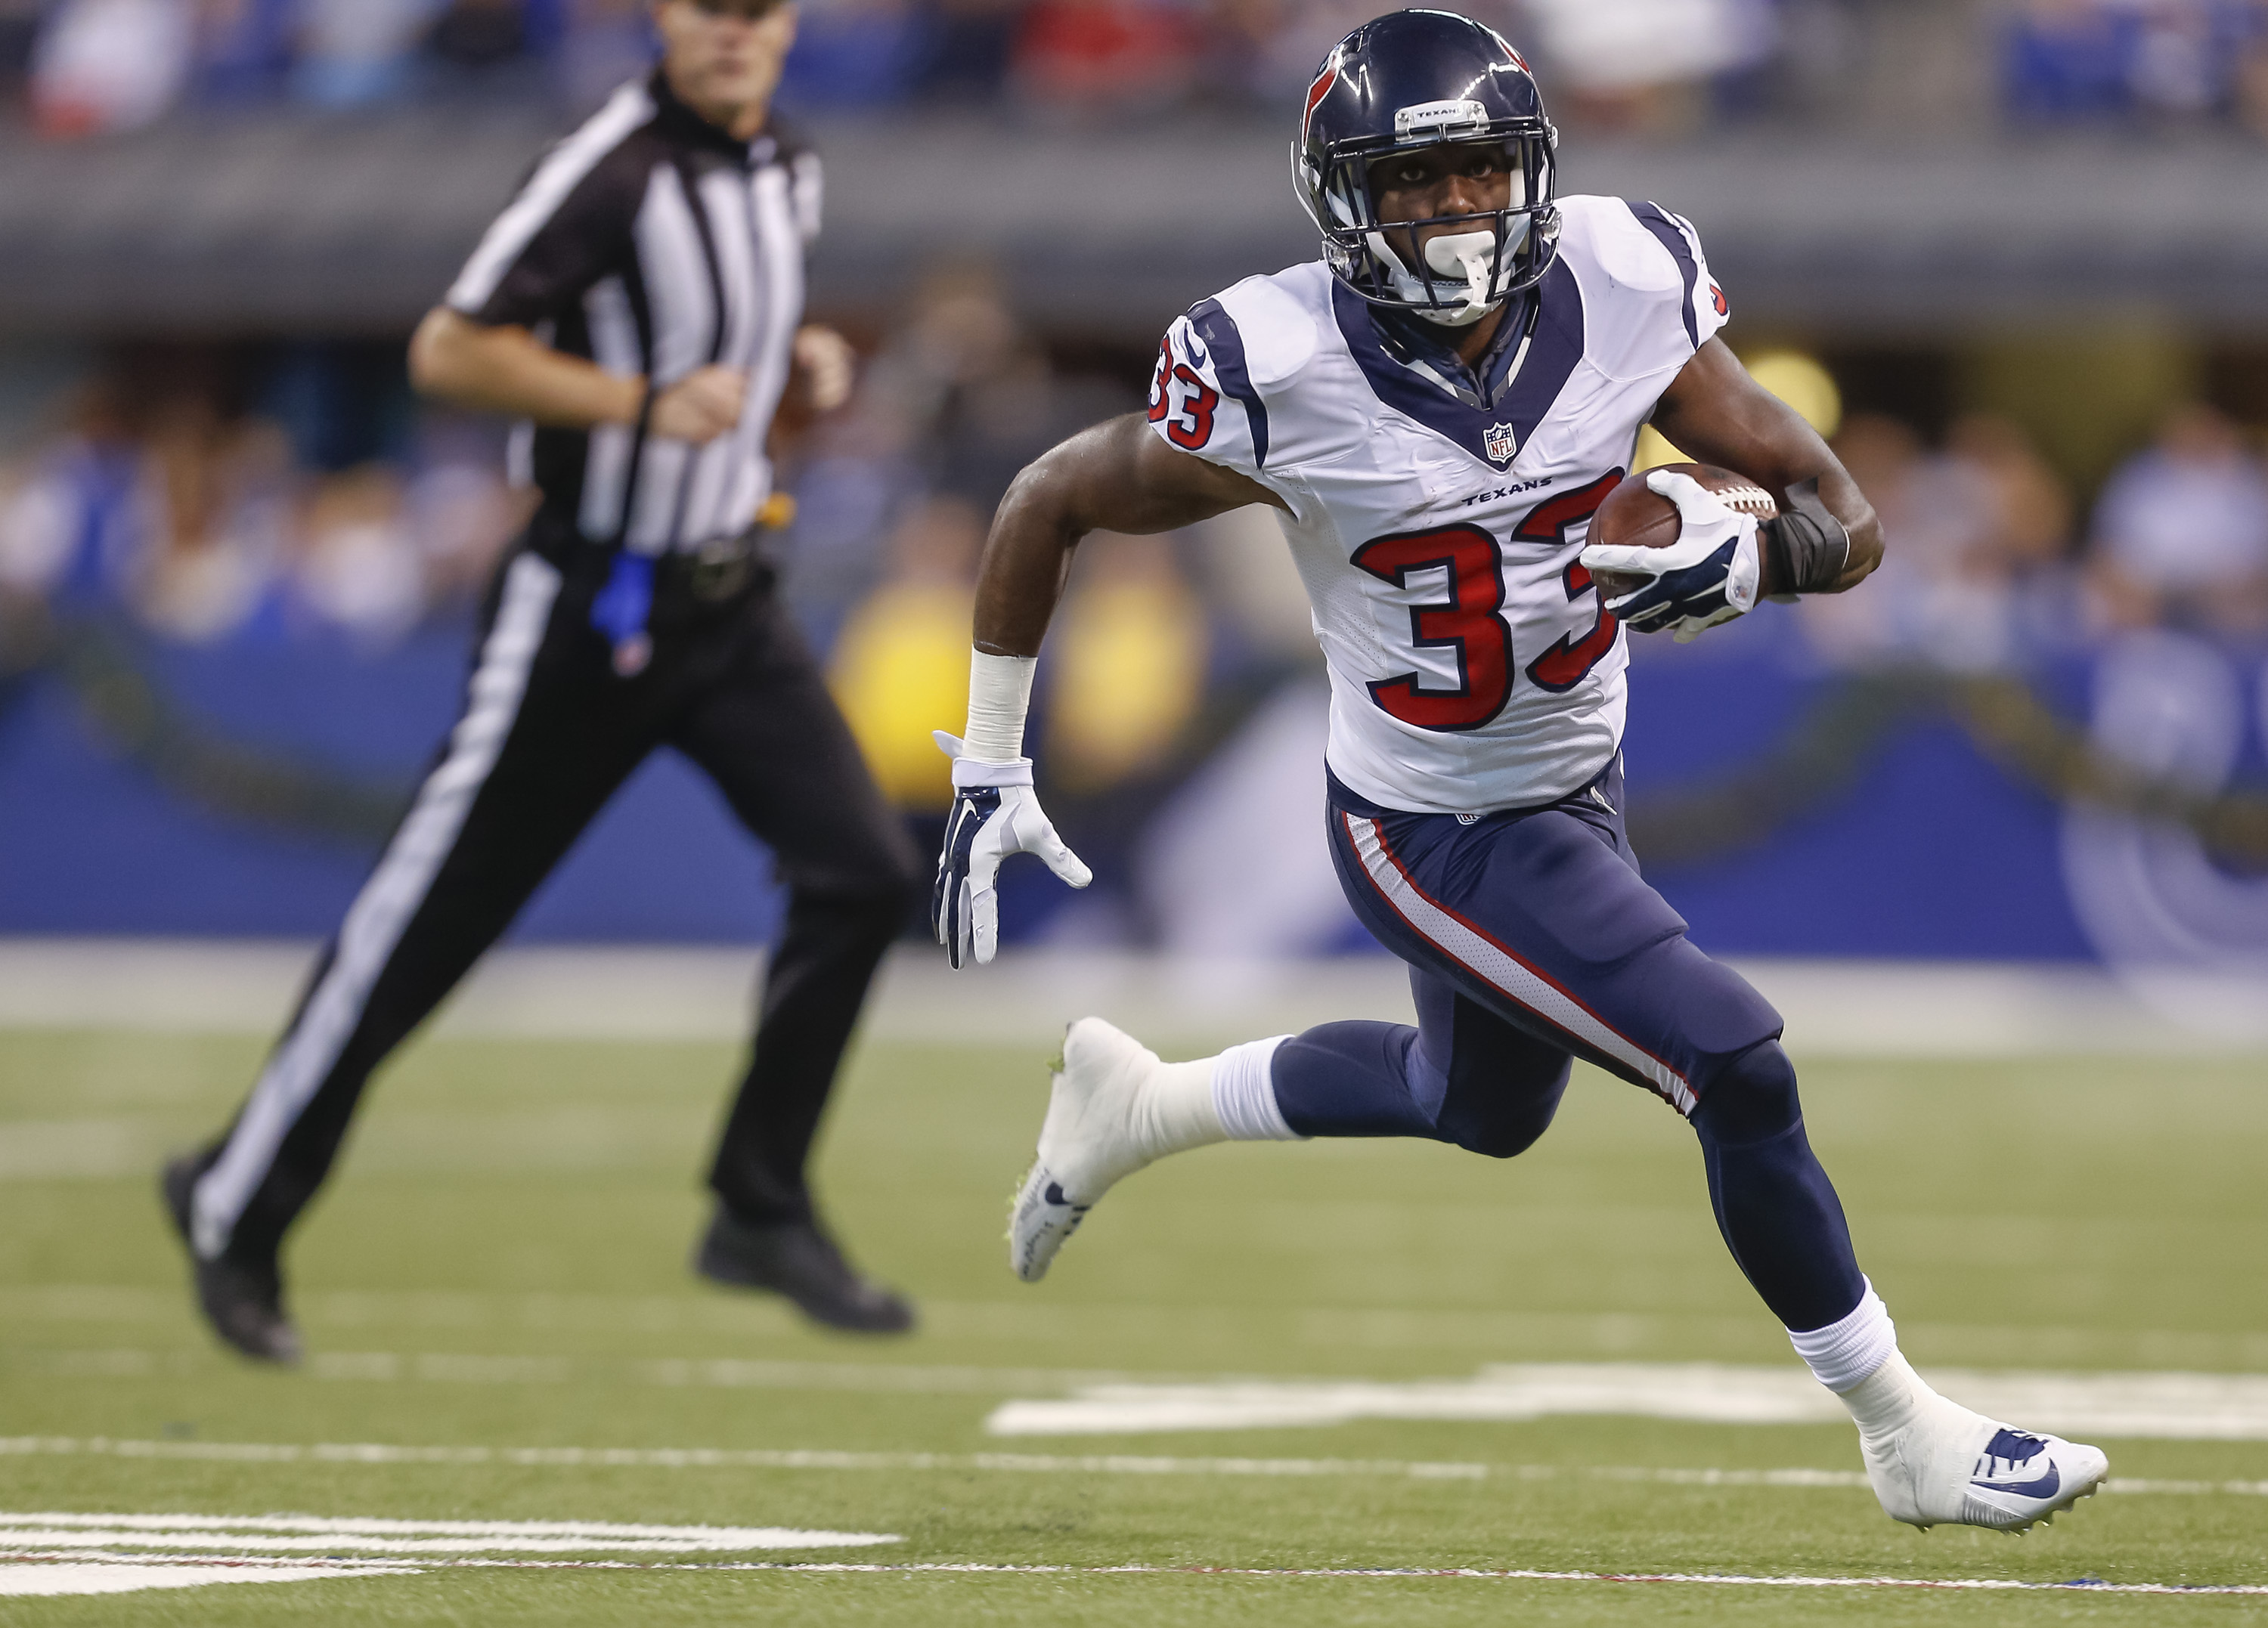 HOUSTON TEXANS, playoffs, odds, chances, seed, scenario, clinch, division